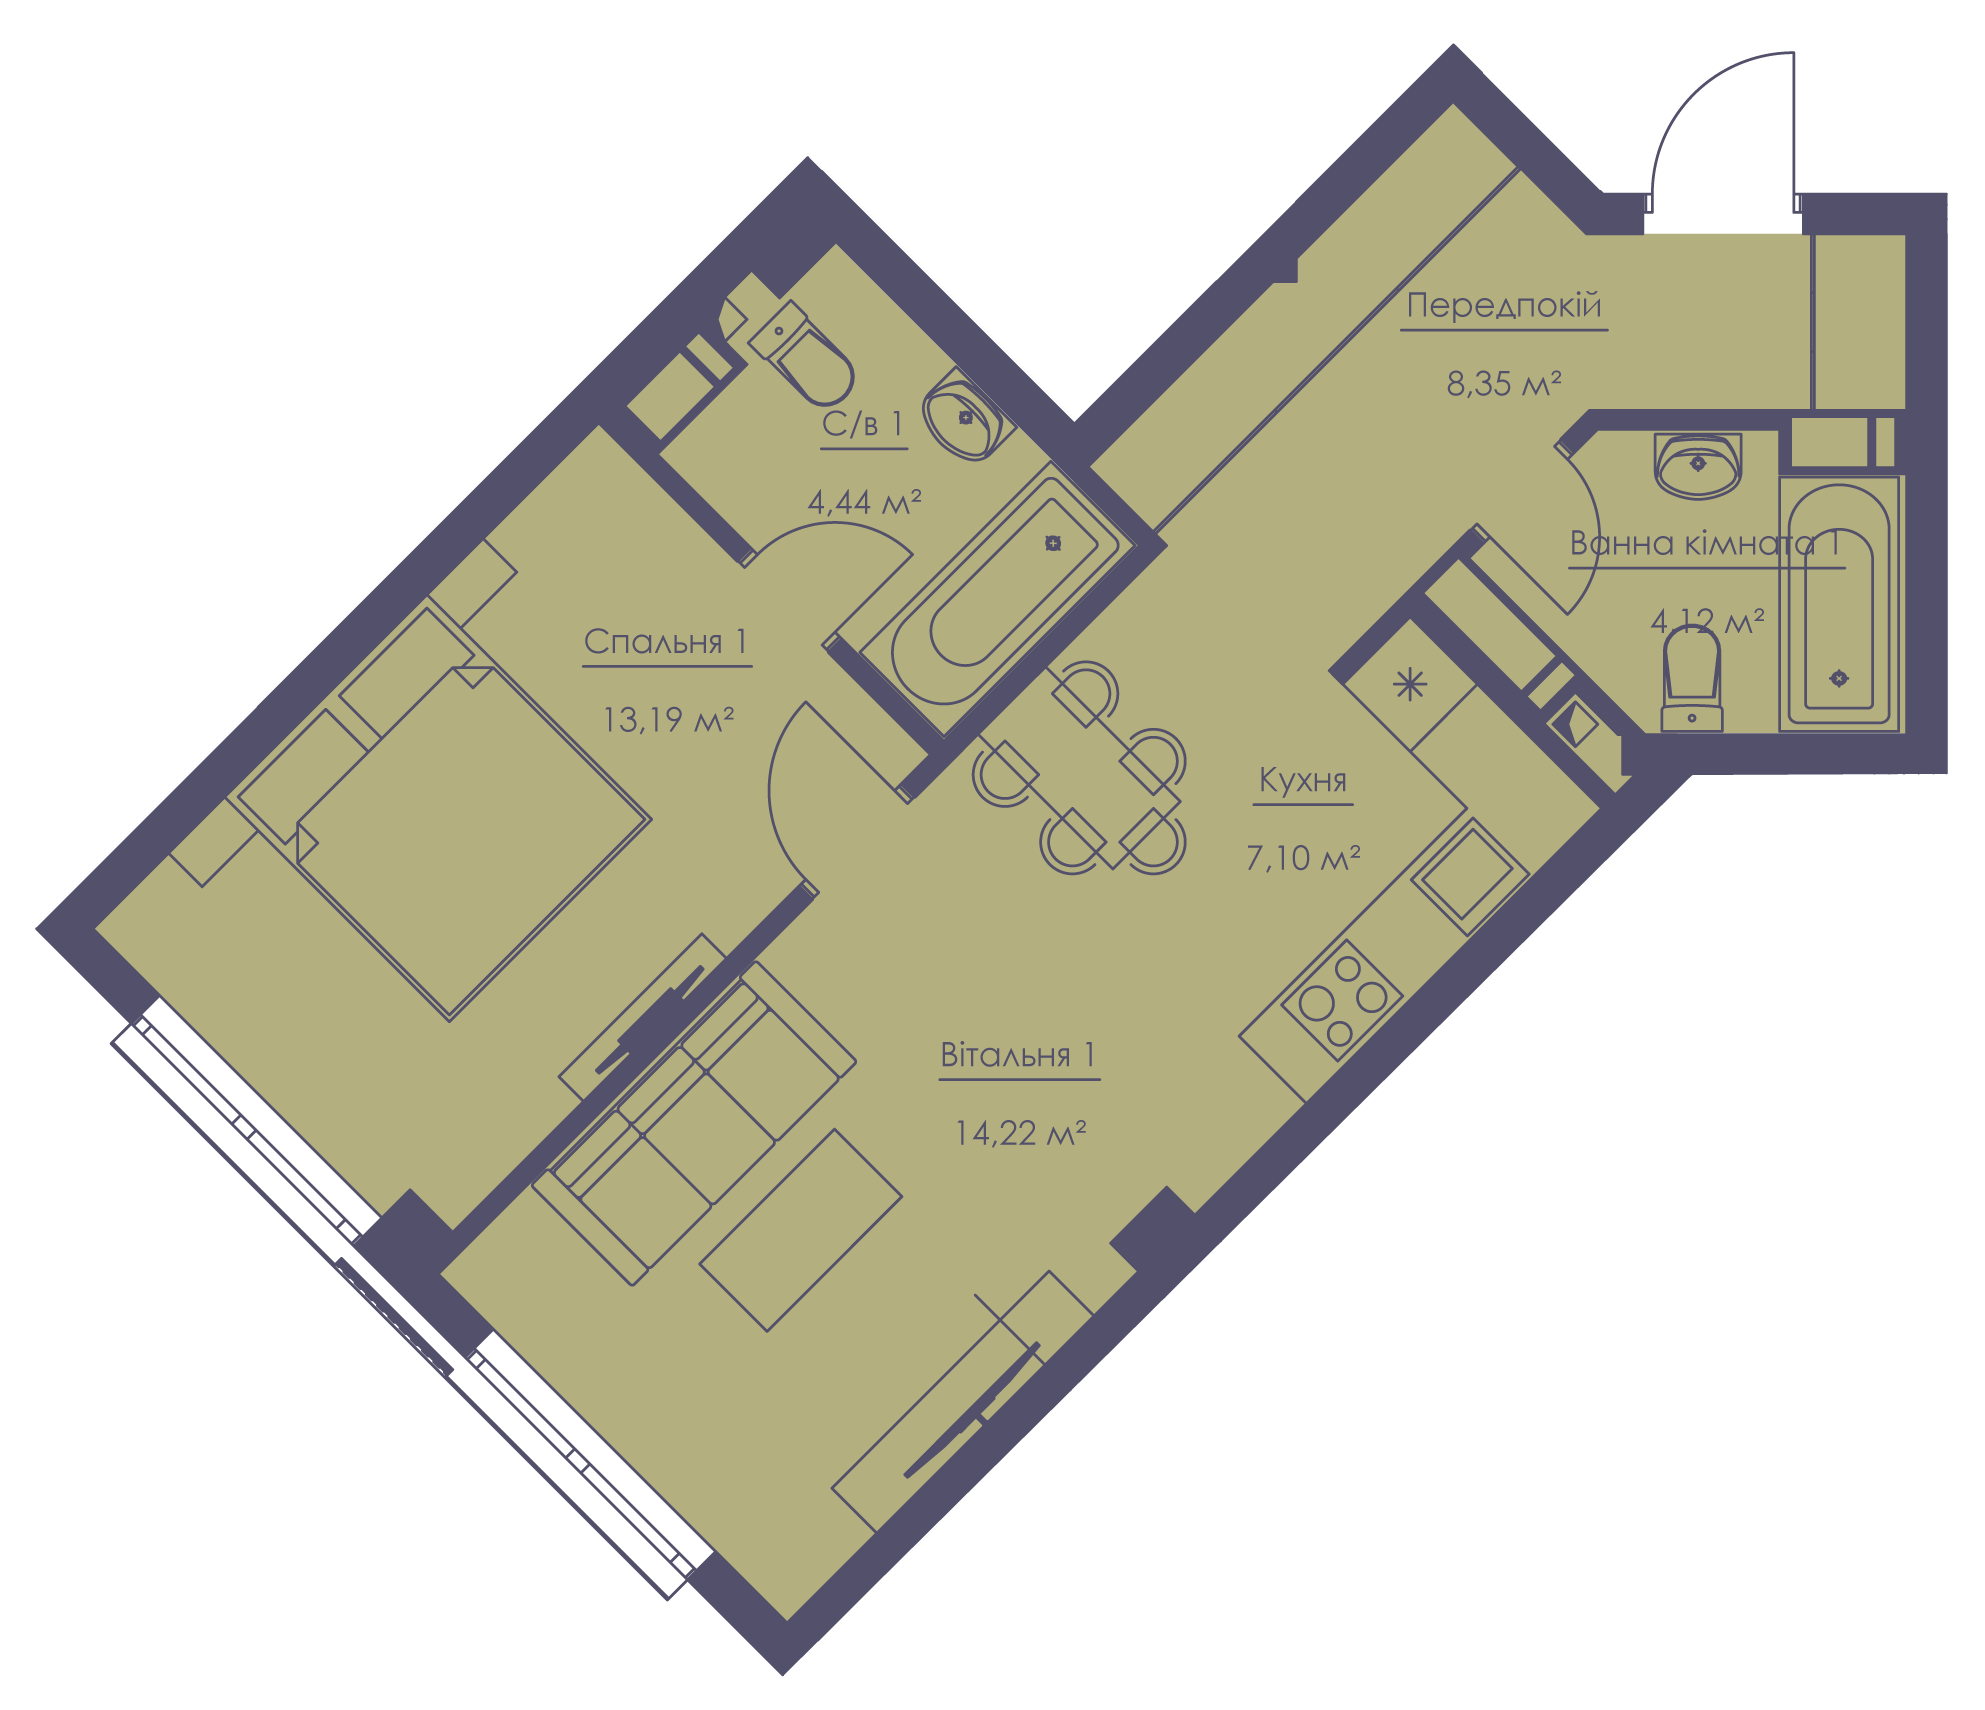 Apartment layout KV_45_2m_1_1_3-1